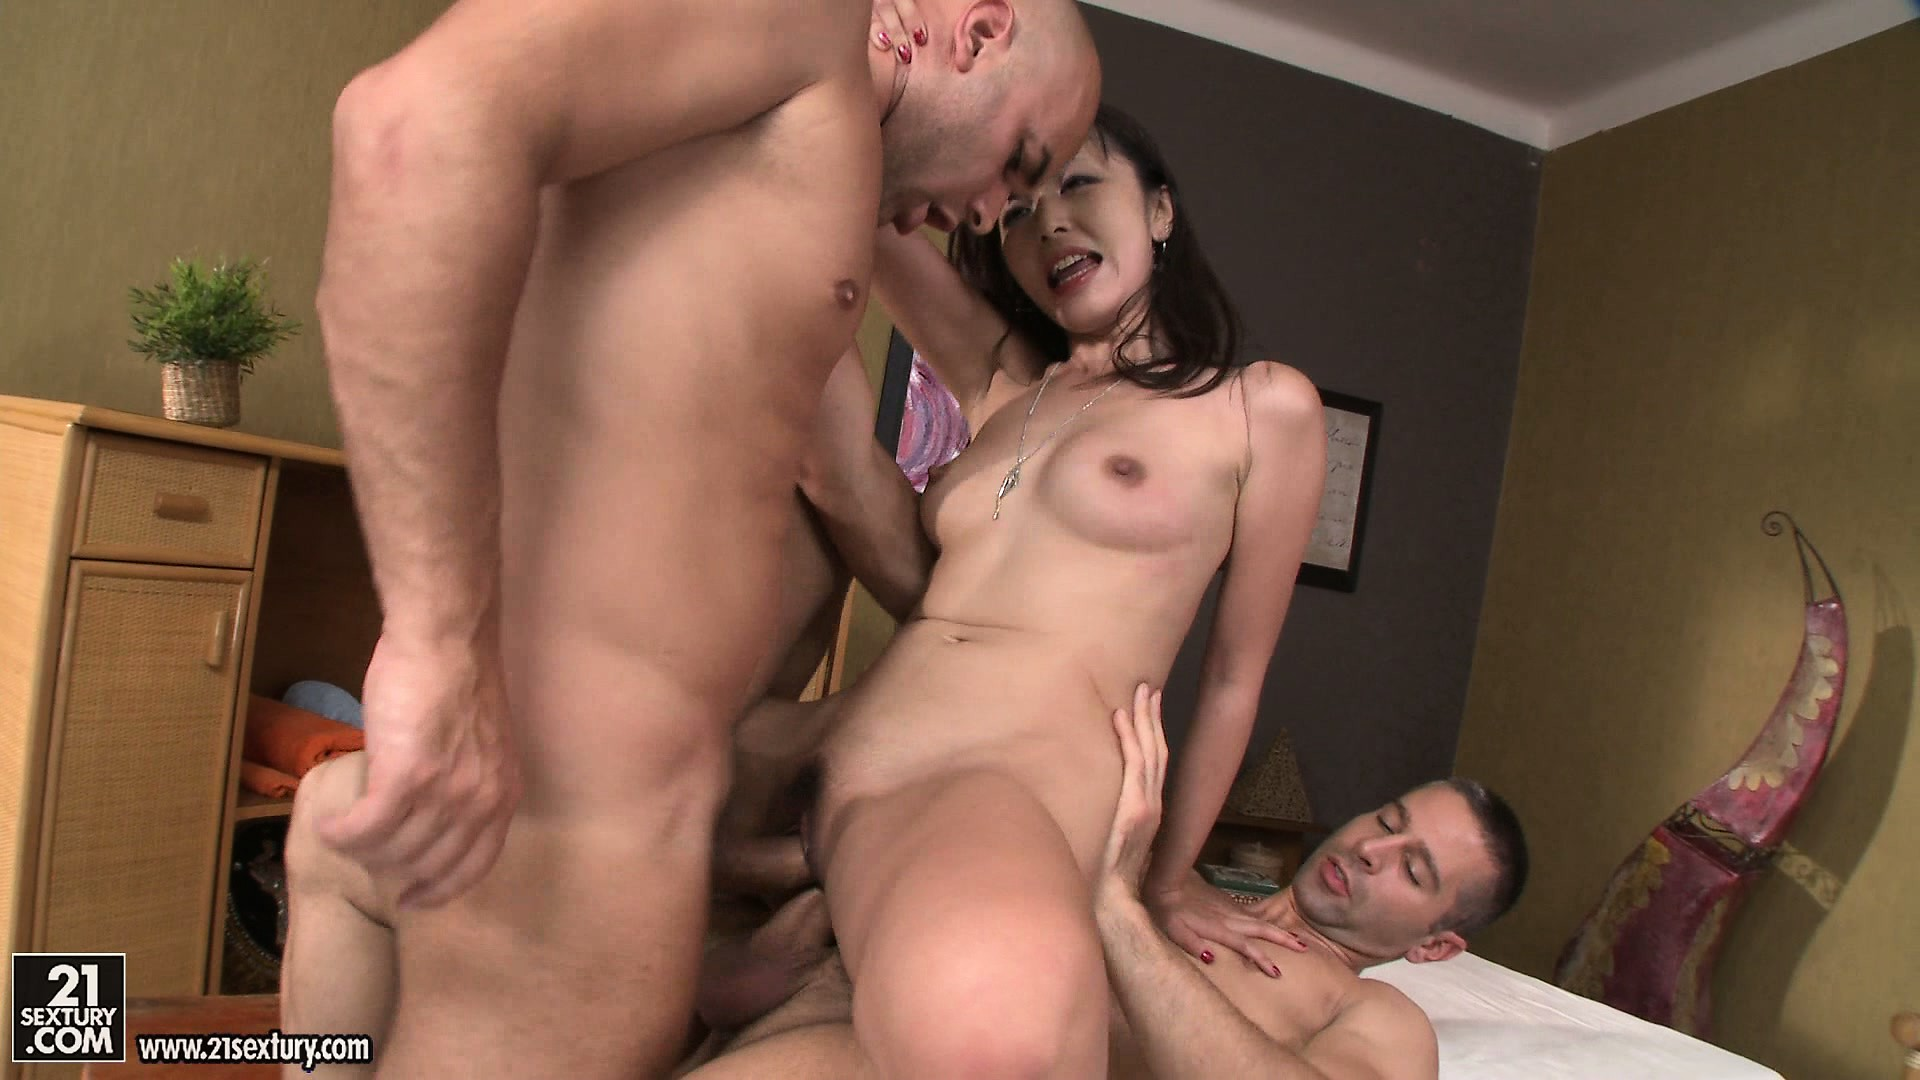 Porn Tube of Asian Masseuse With A Tiny Body Gives A Pov Blowjob As A Finisher